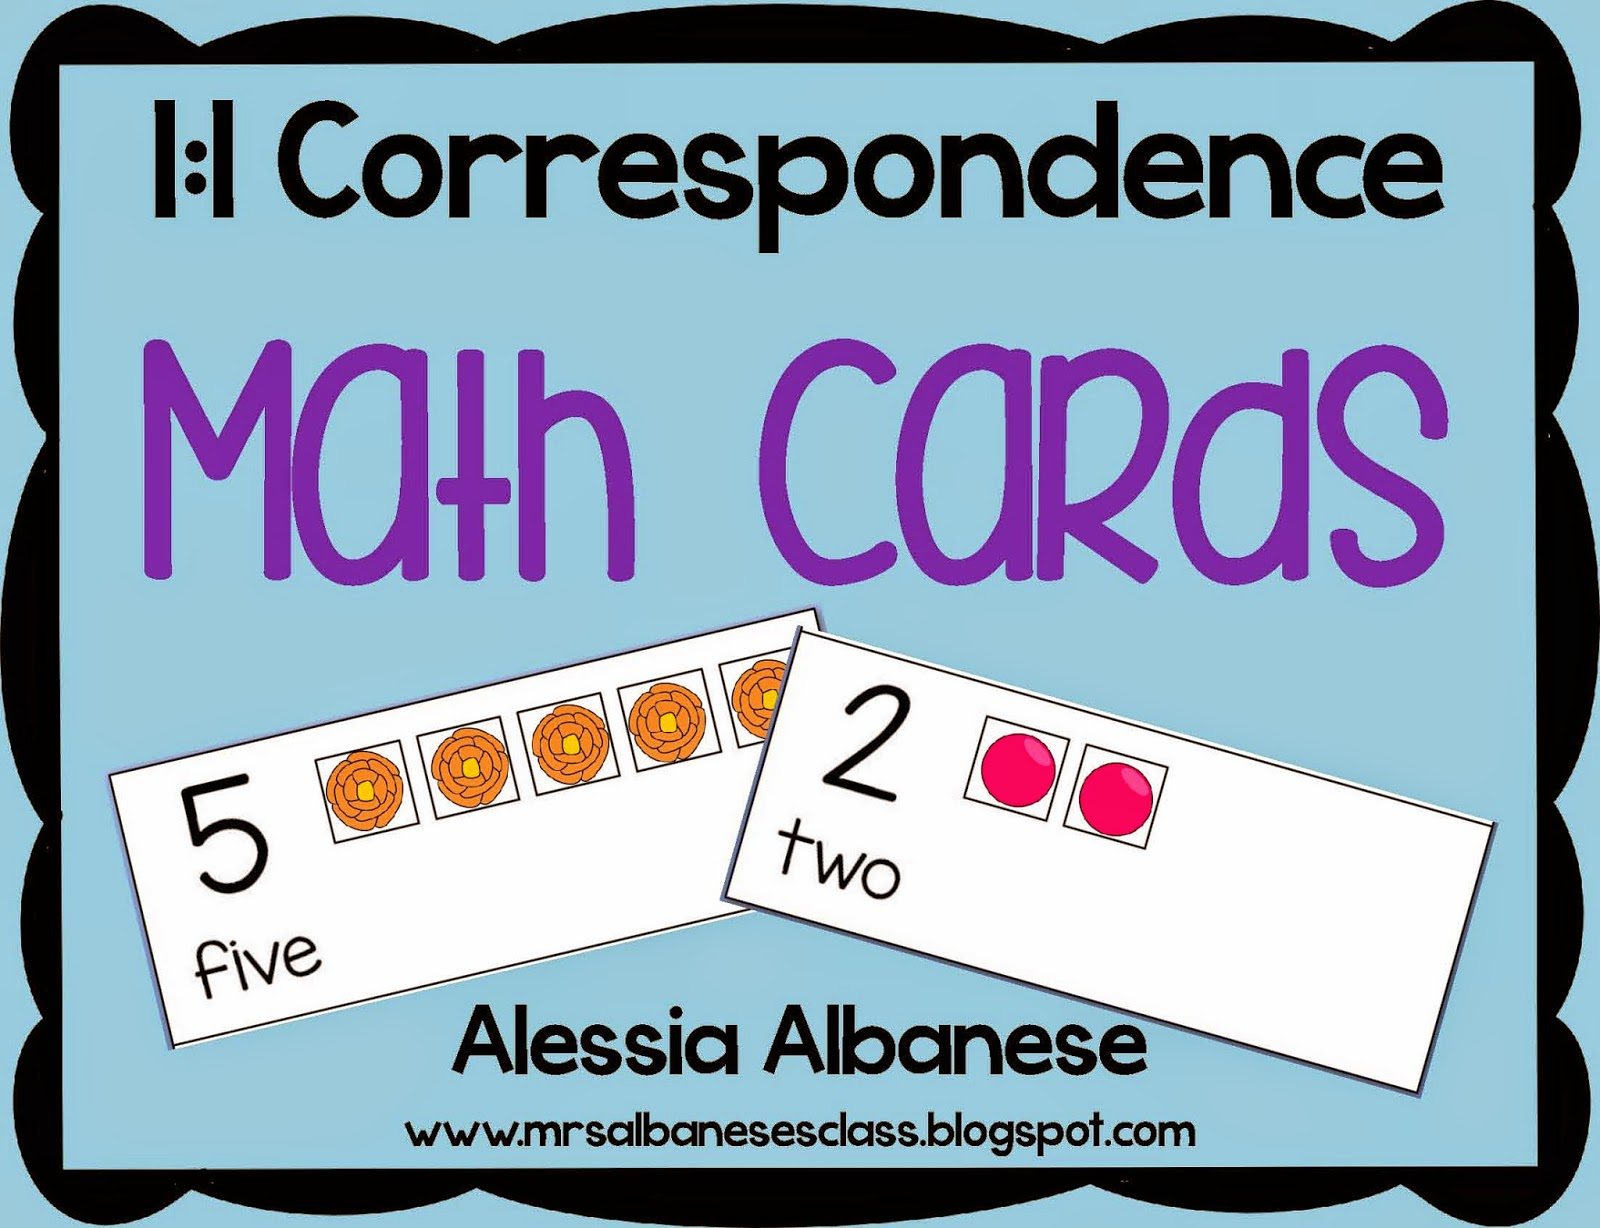 http://www.teacherspayteachers.com/Product/Math-Cards-11-Correspondence-FREEBIE-1441621